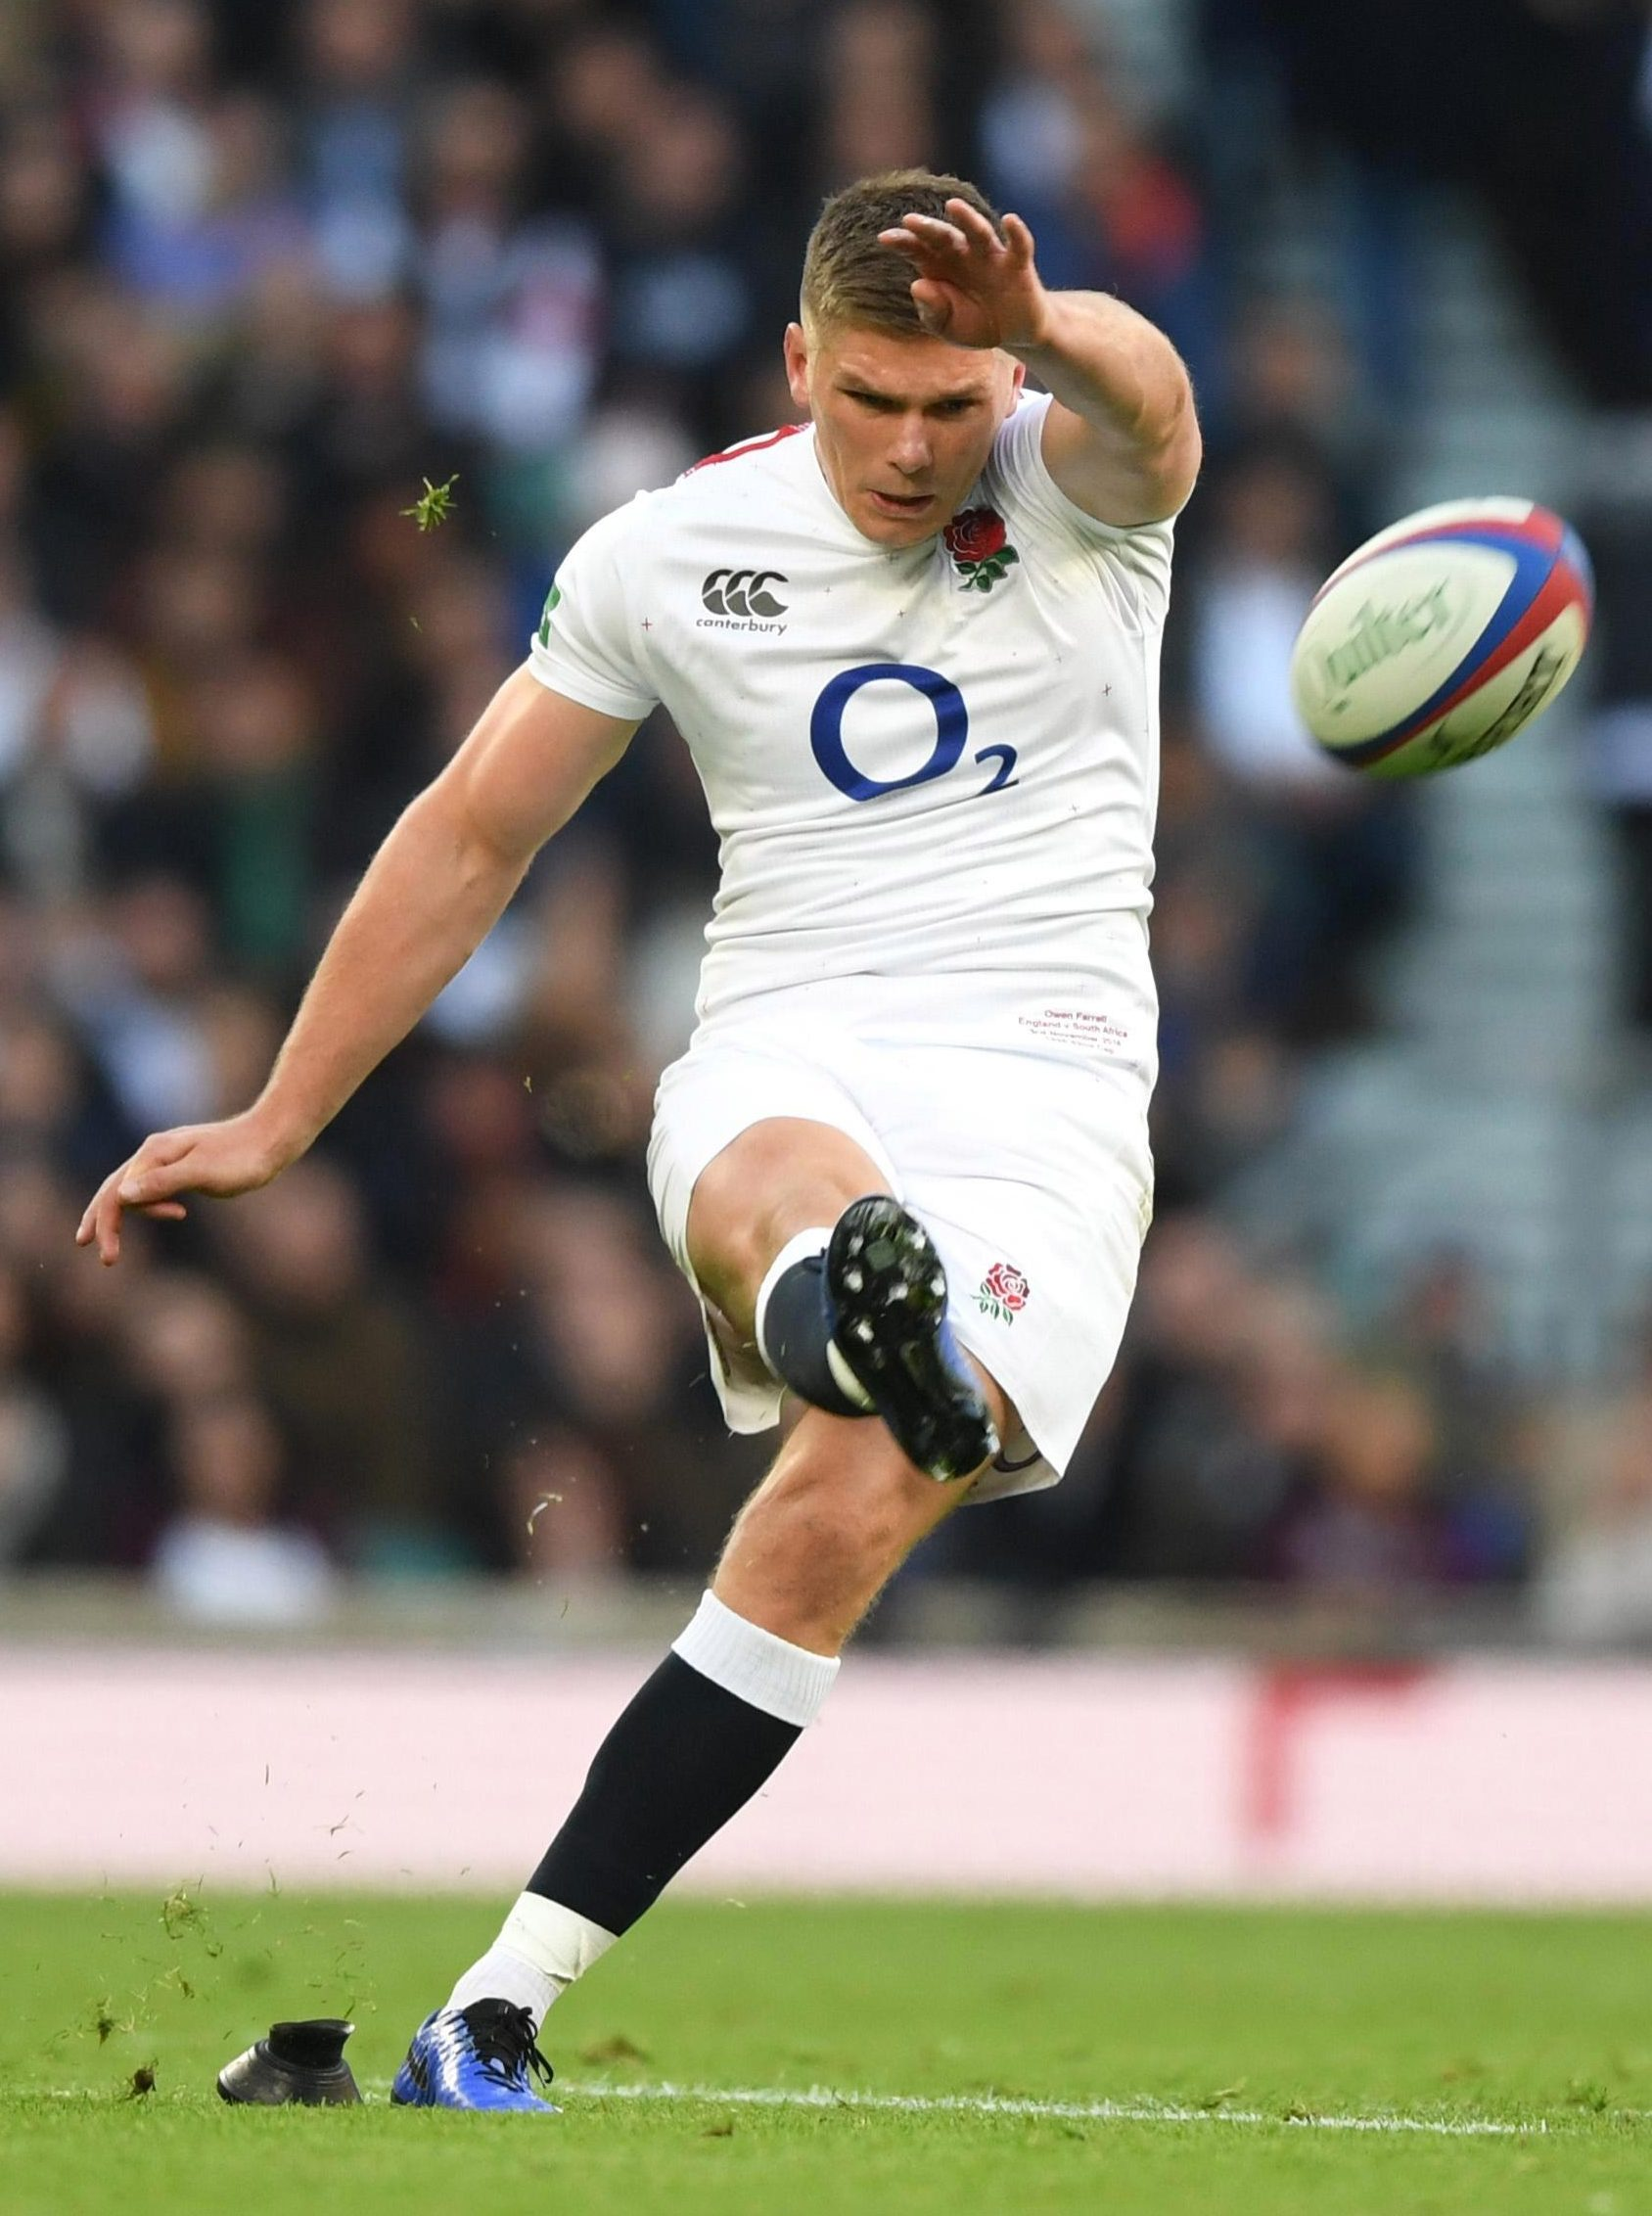 Owen Farrell was the England hero, and almost villain, as he kicked England to glory over South Africa